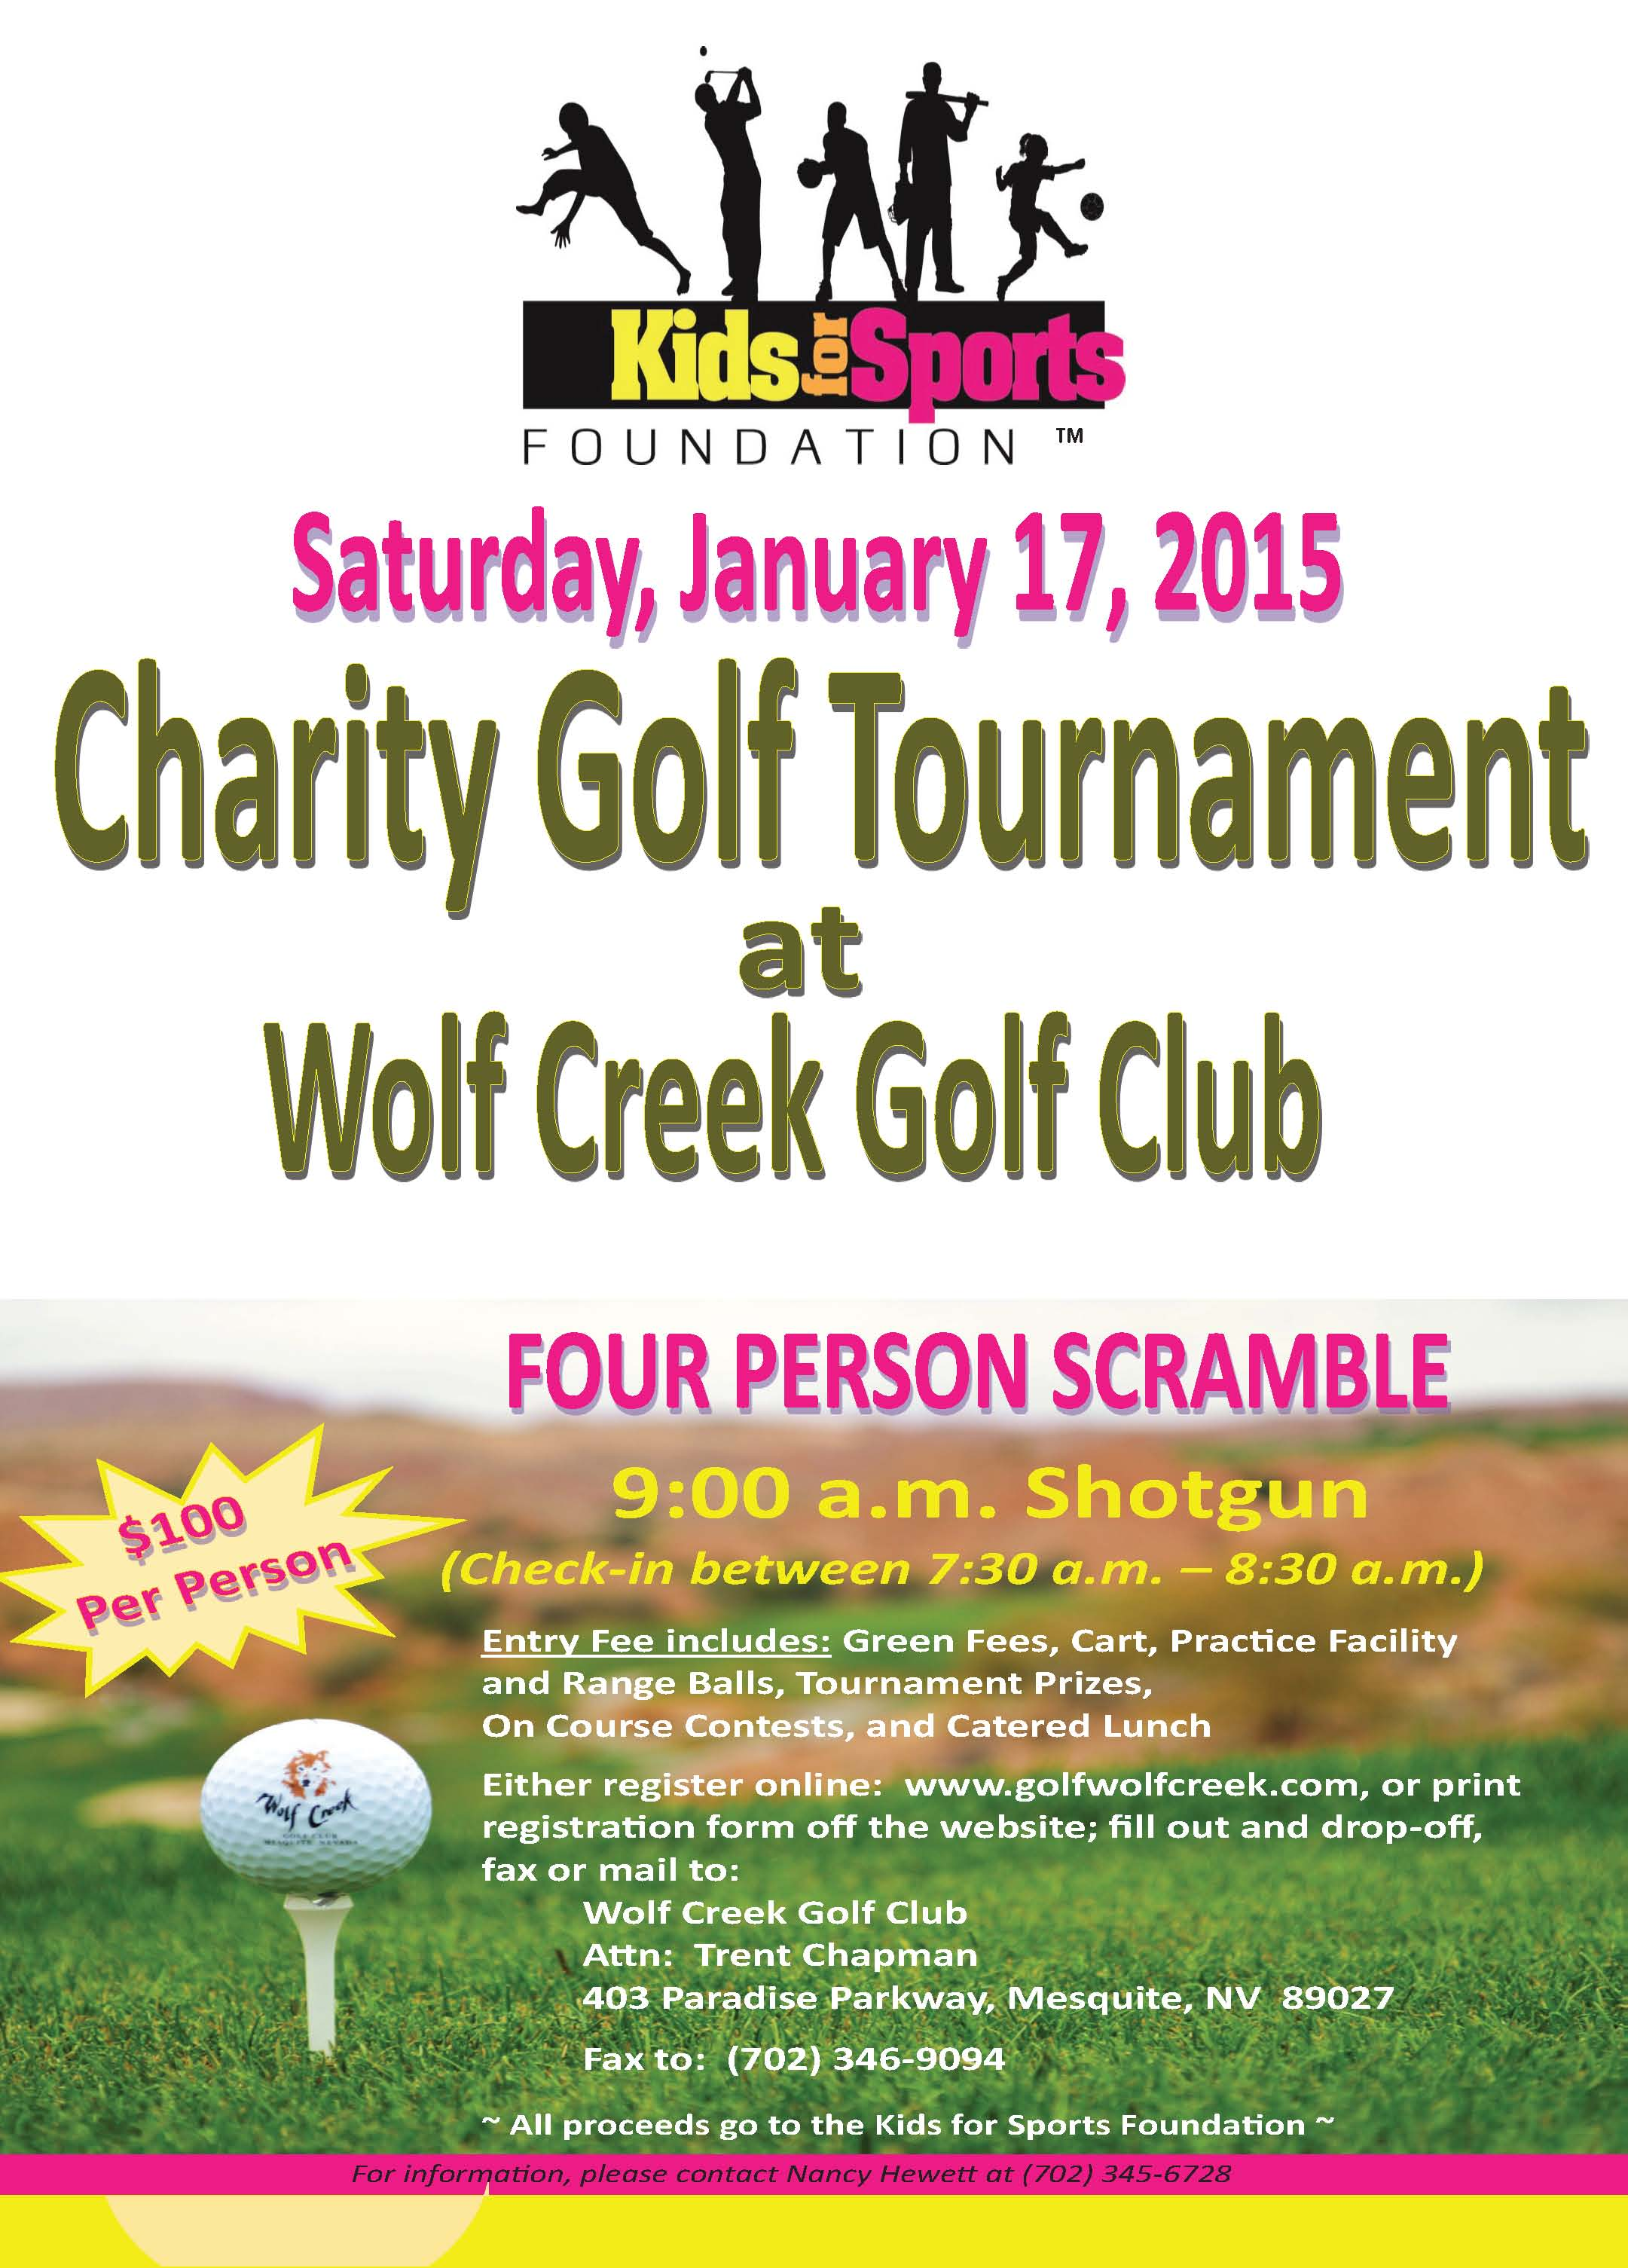 Kids for Sports Fundraiser Saturday